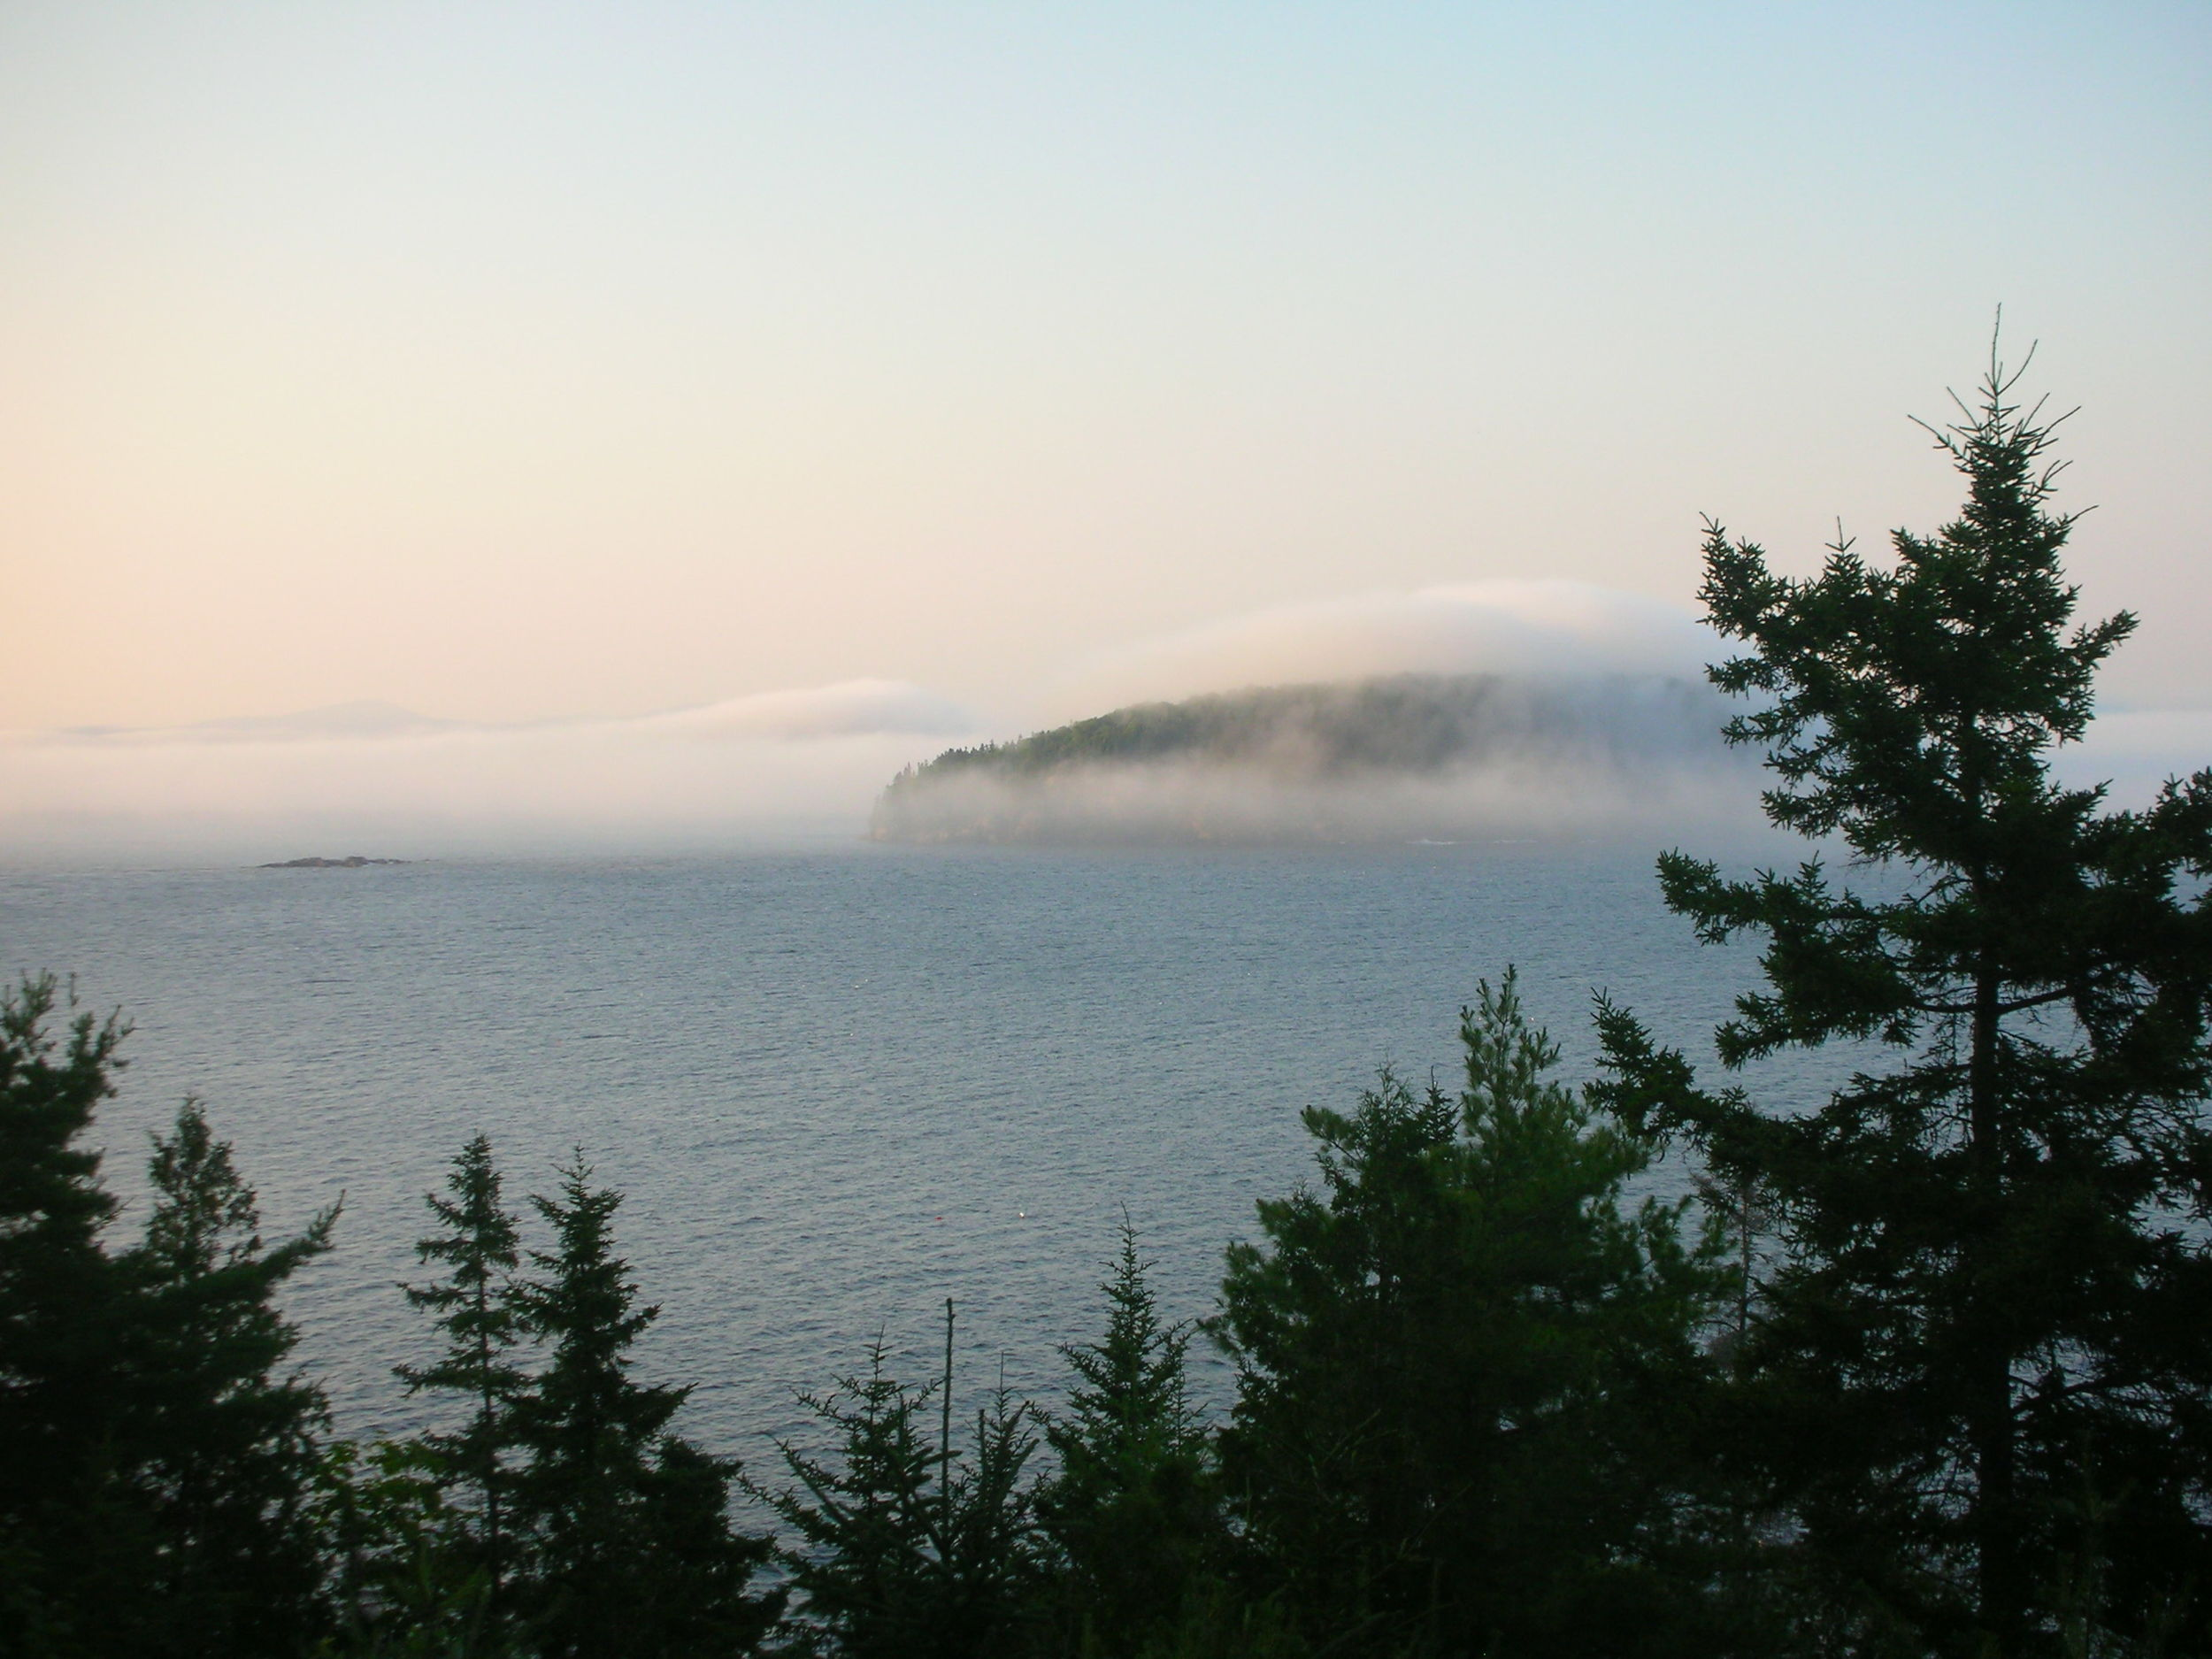 The fog's artistic brush stroke over the Porcupine Islands from the porch.